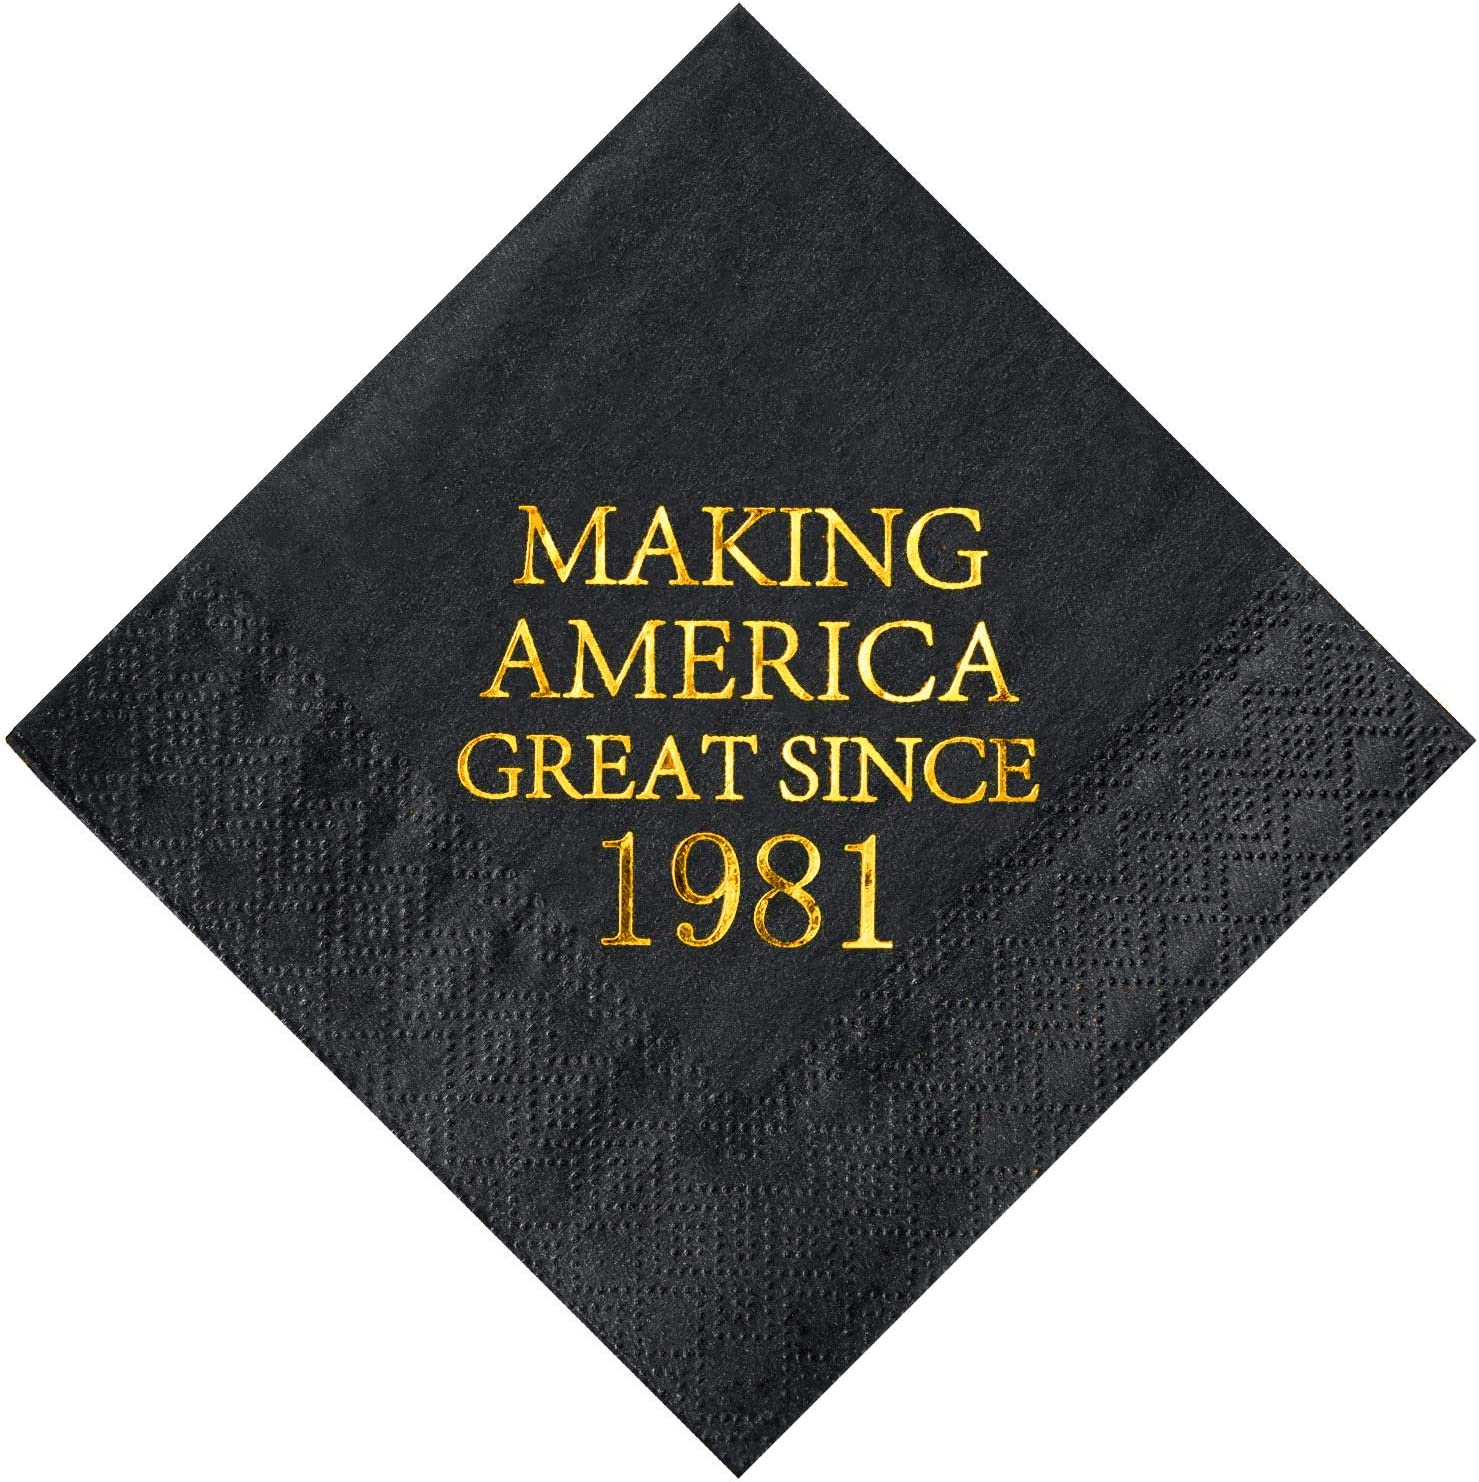 Crisky 40th Birthday Disposabel Napkins Black and Gold Dessert Beverage Cocktail Cake Napkins 40th Birthday Decoration Party Supplies for Man Making Great Since 1981, 50 Pack 4.9